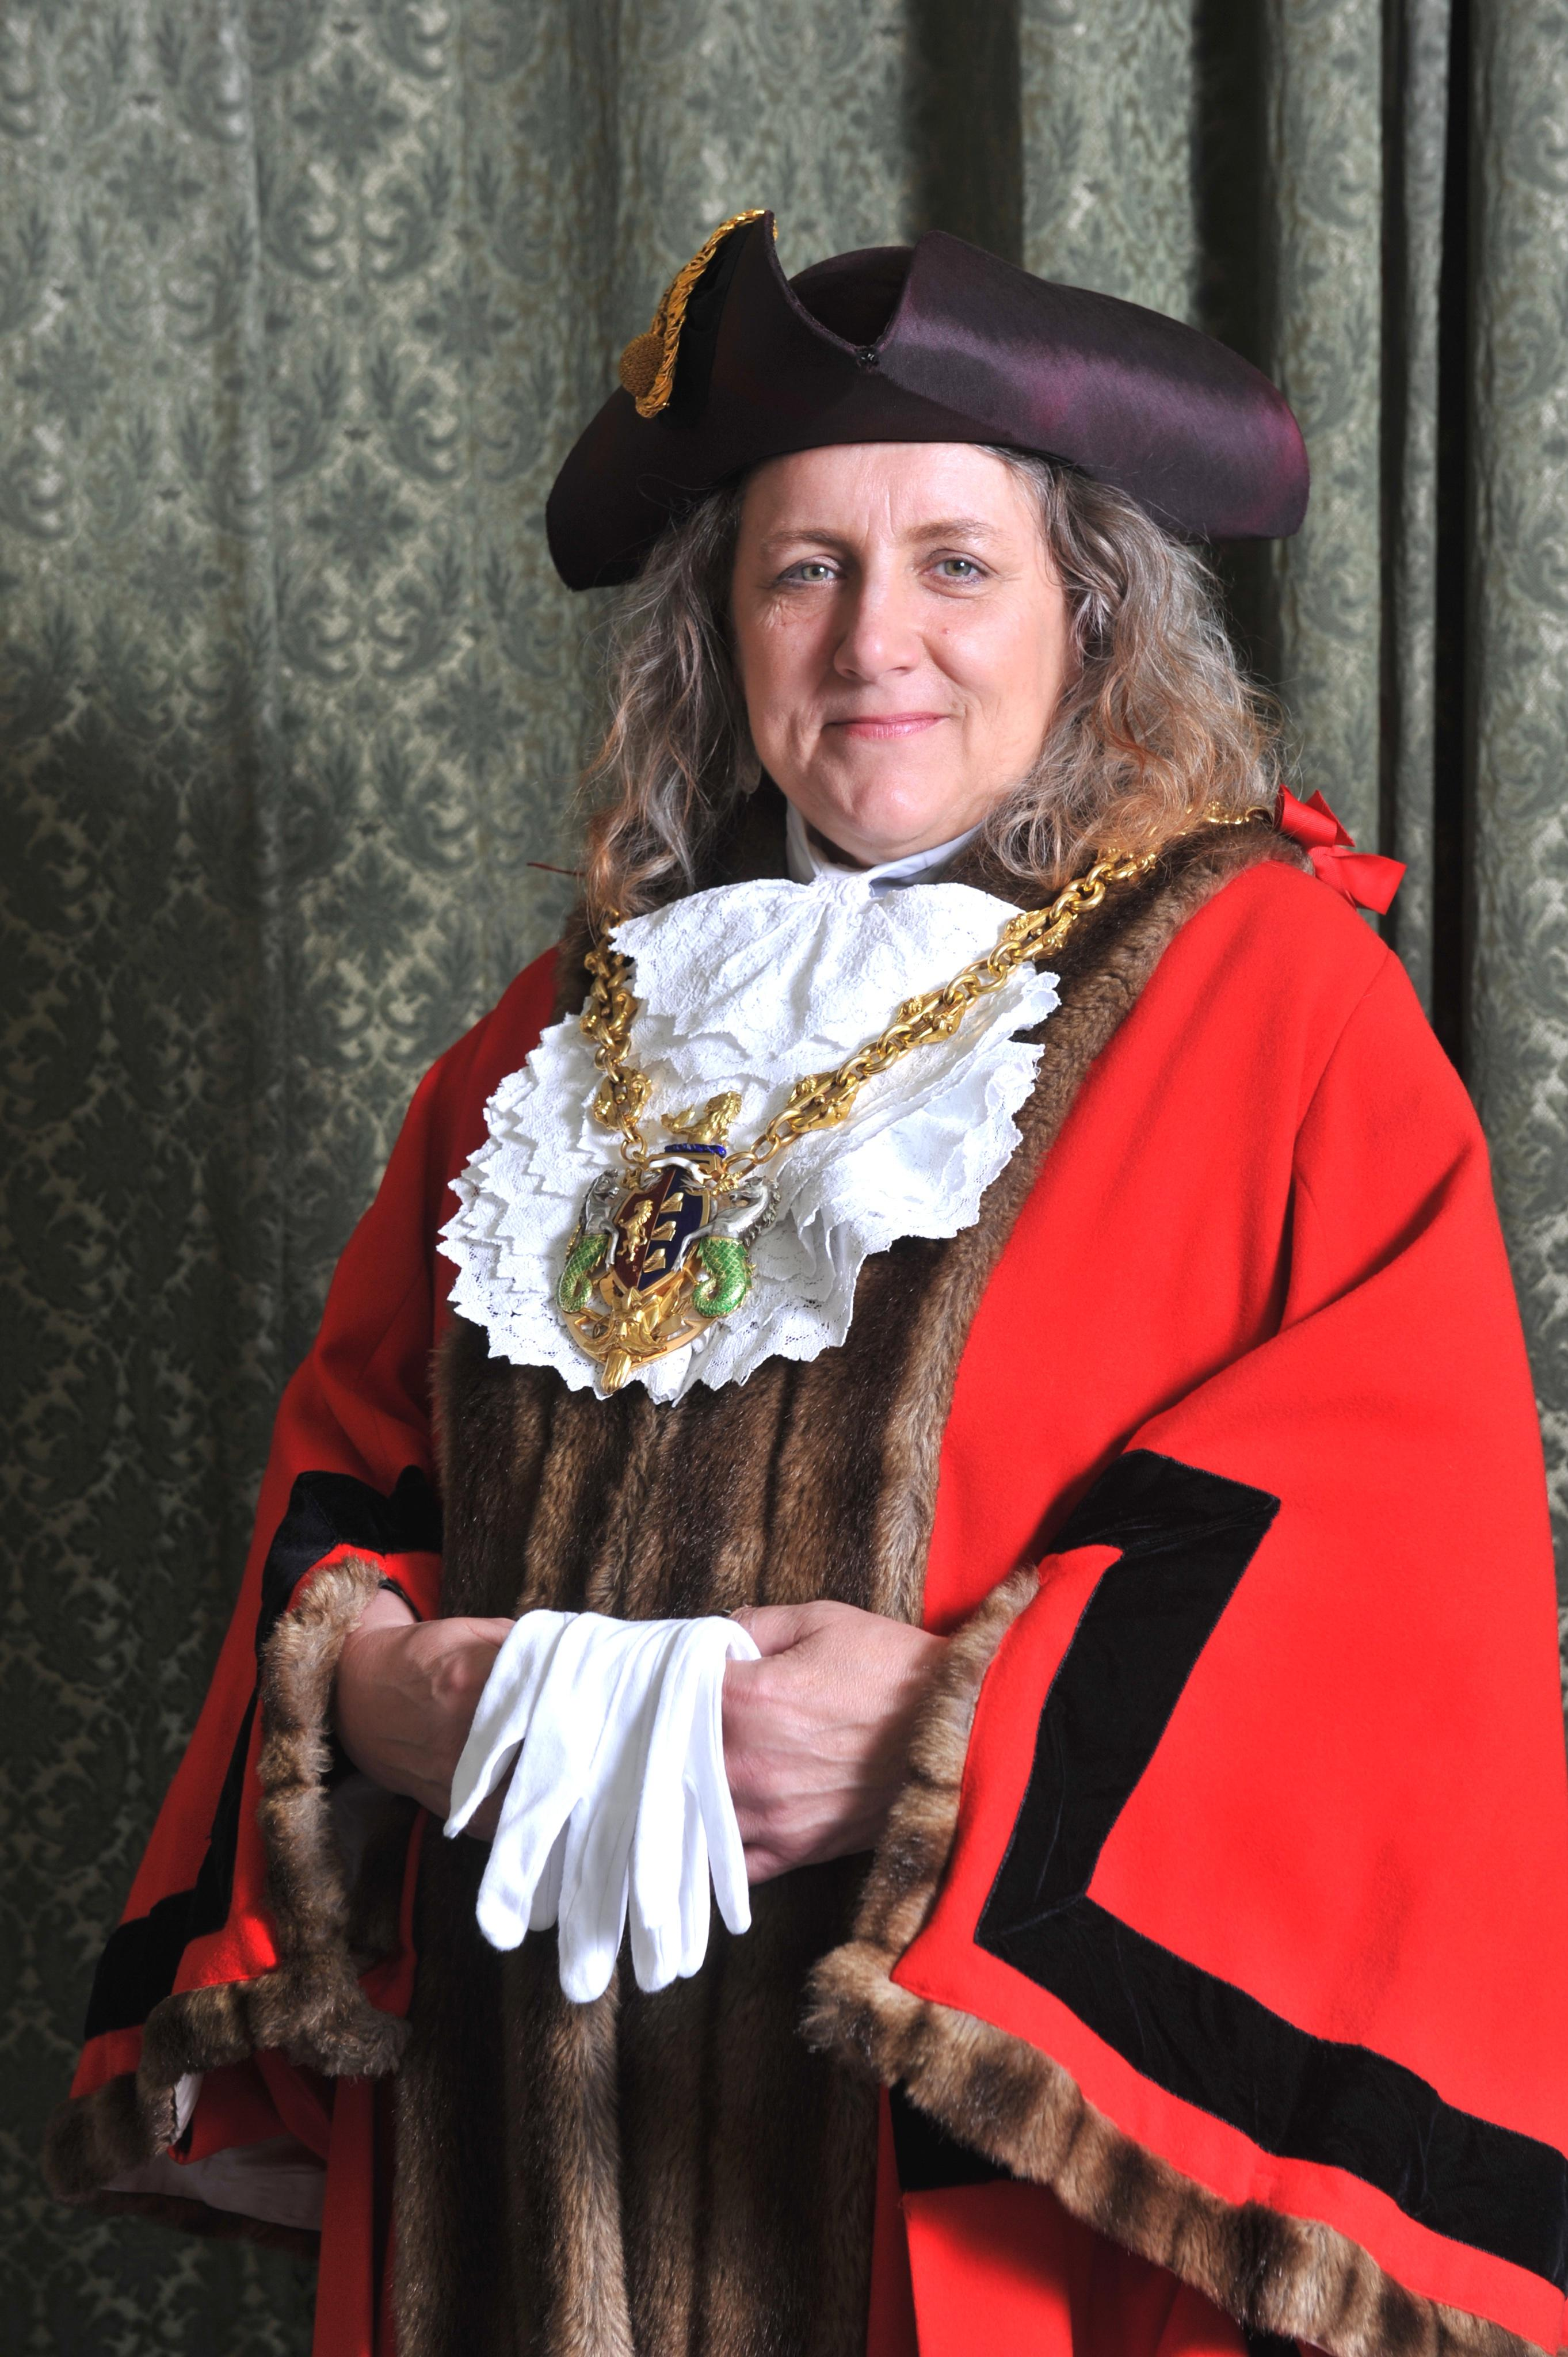 Mayor of Ipswich, Councillor Jan Parry in robes and chain